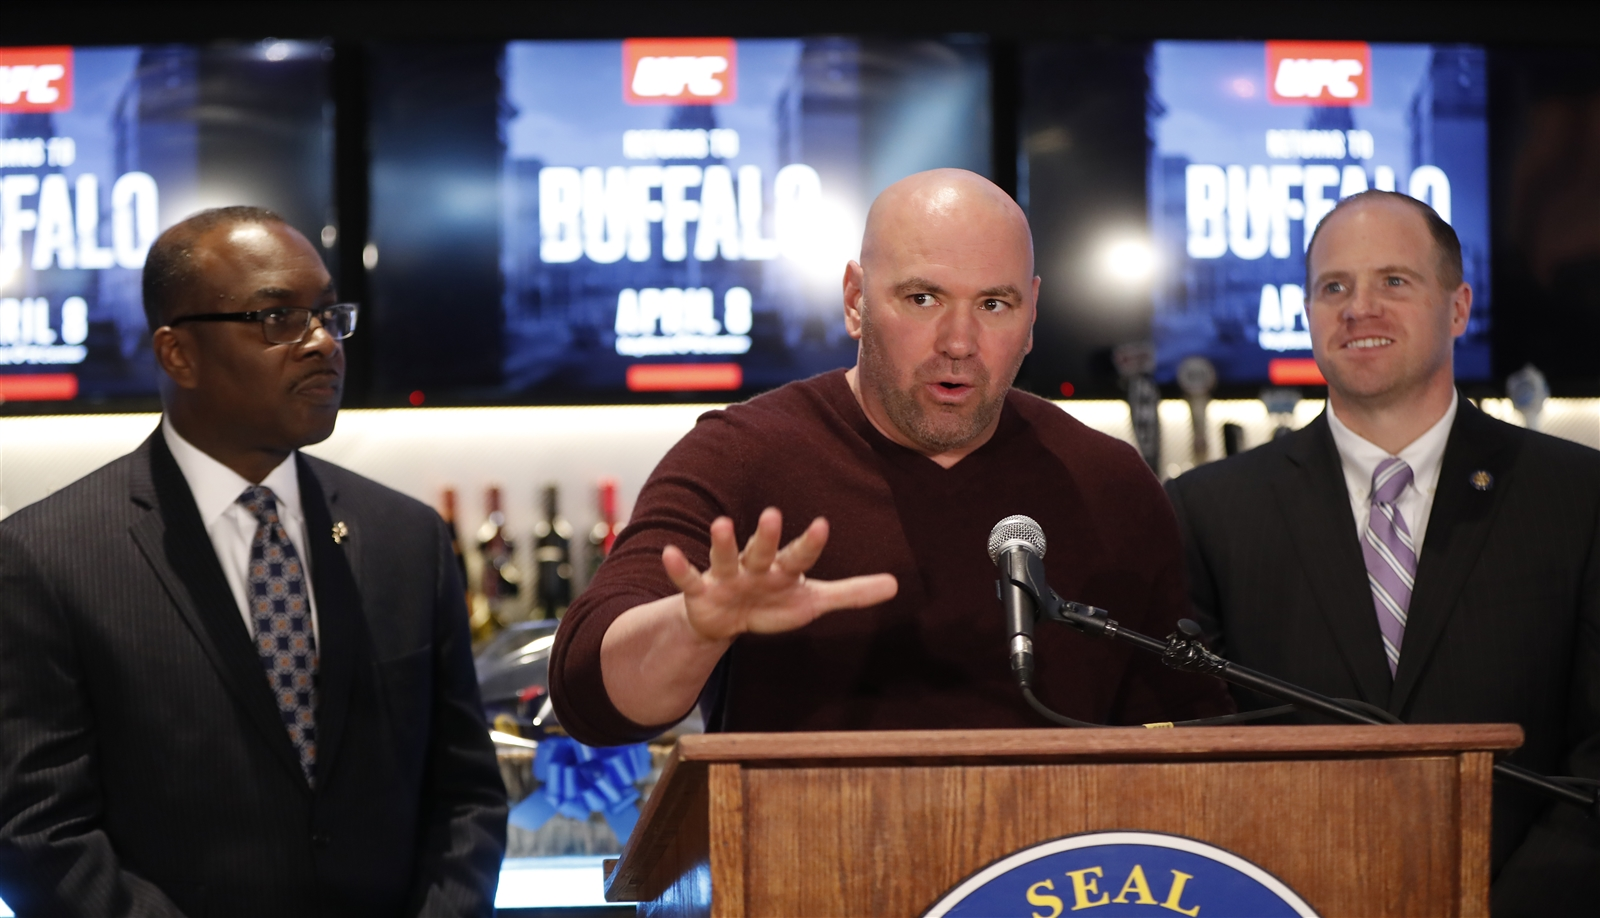 UFC President Dana White speaks during a press conference at (716).